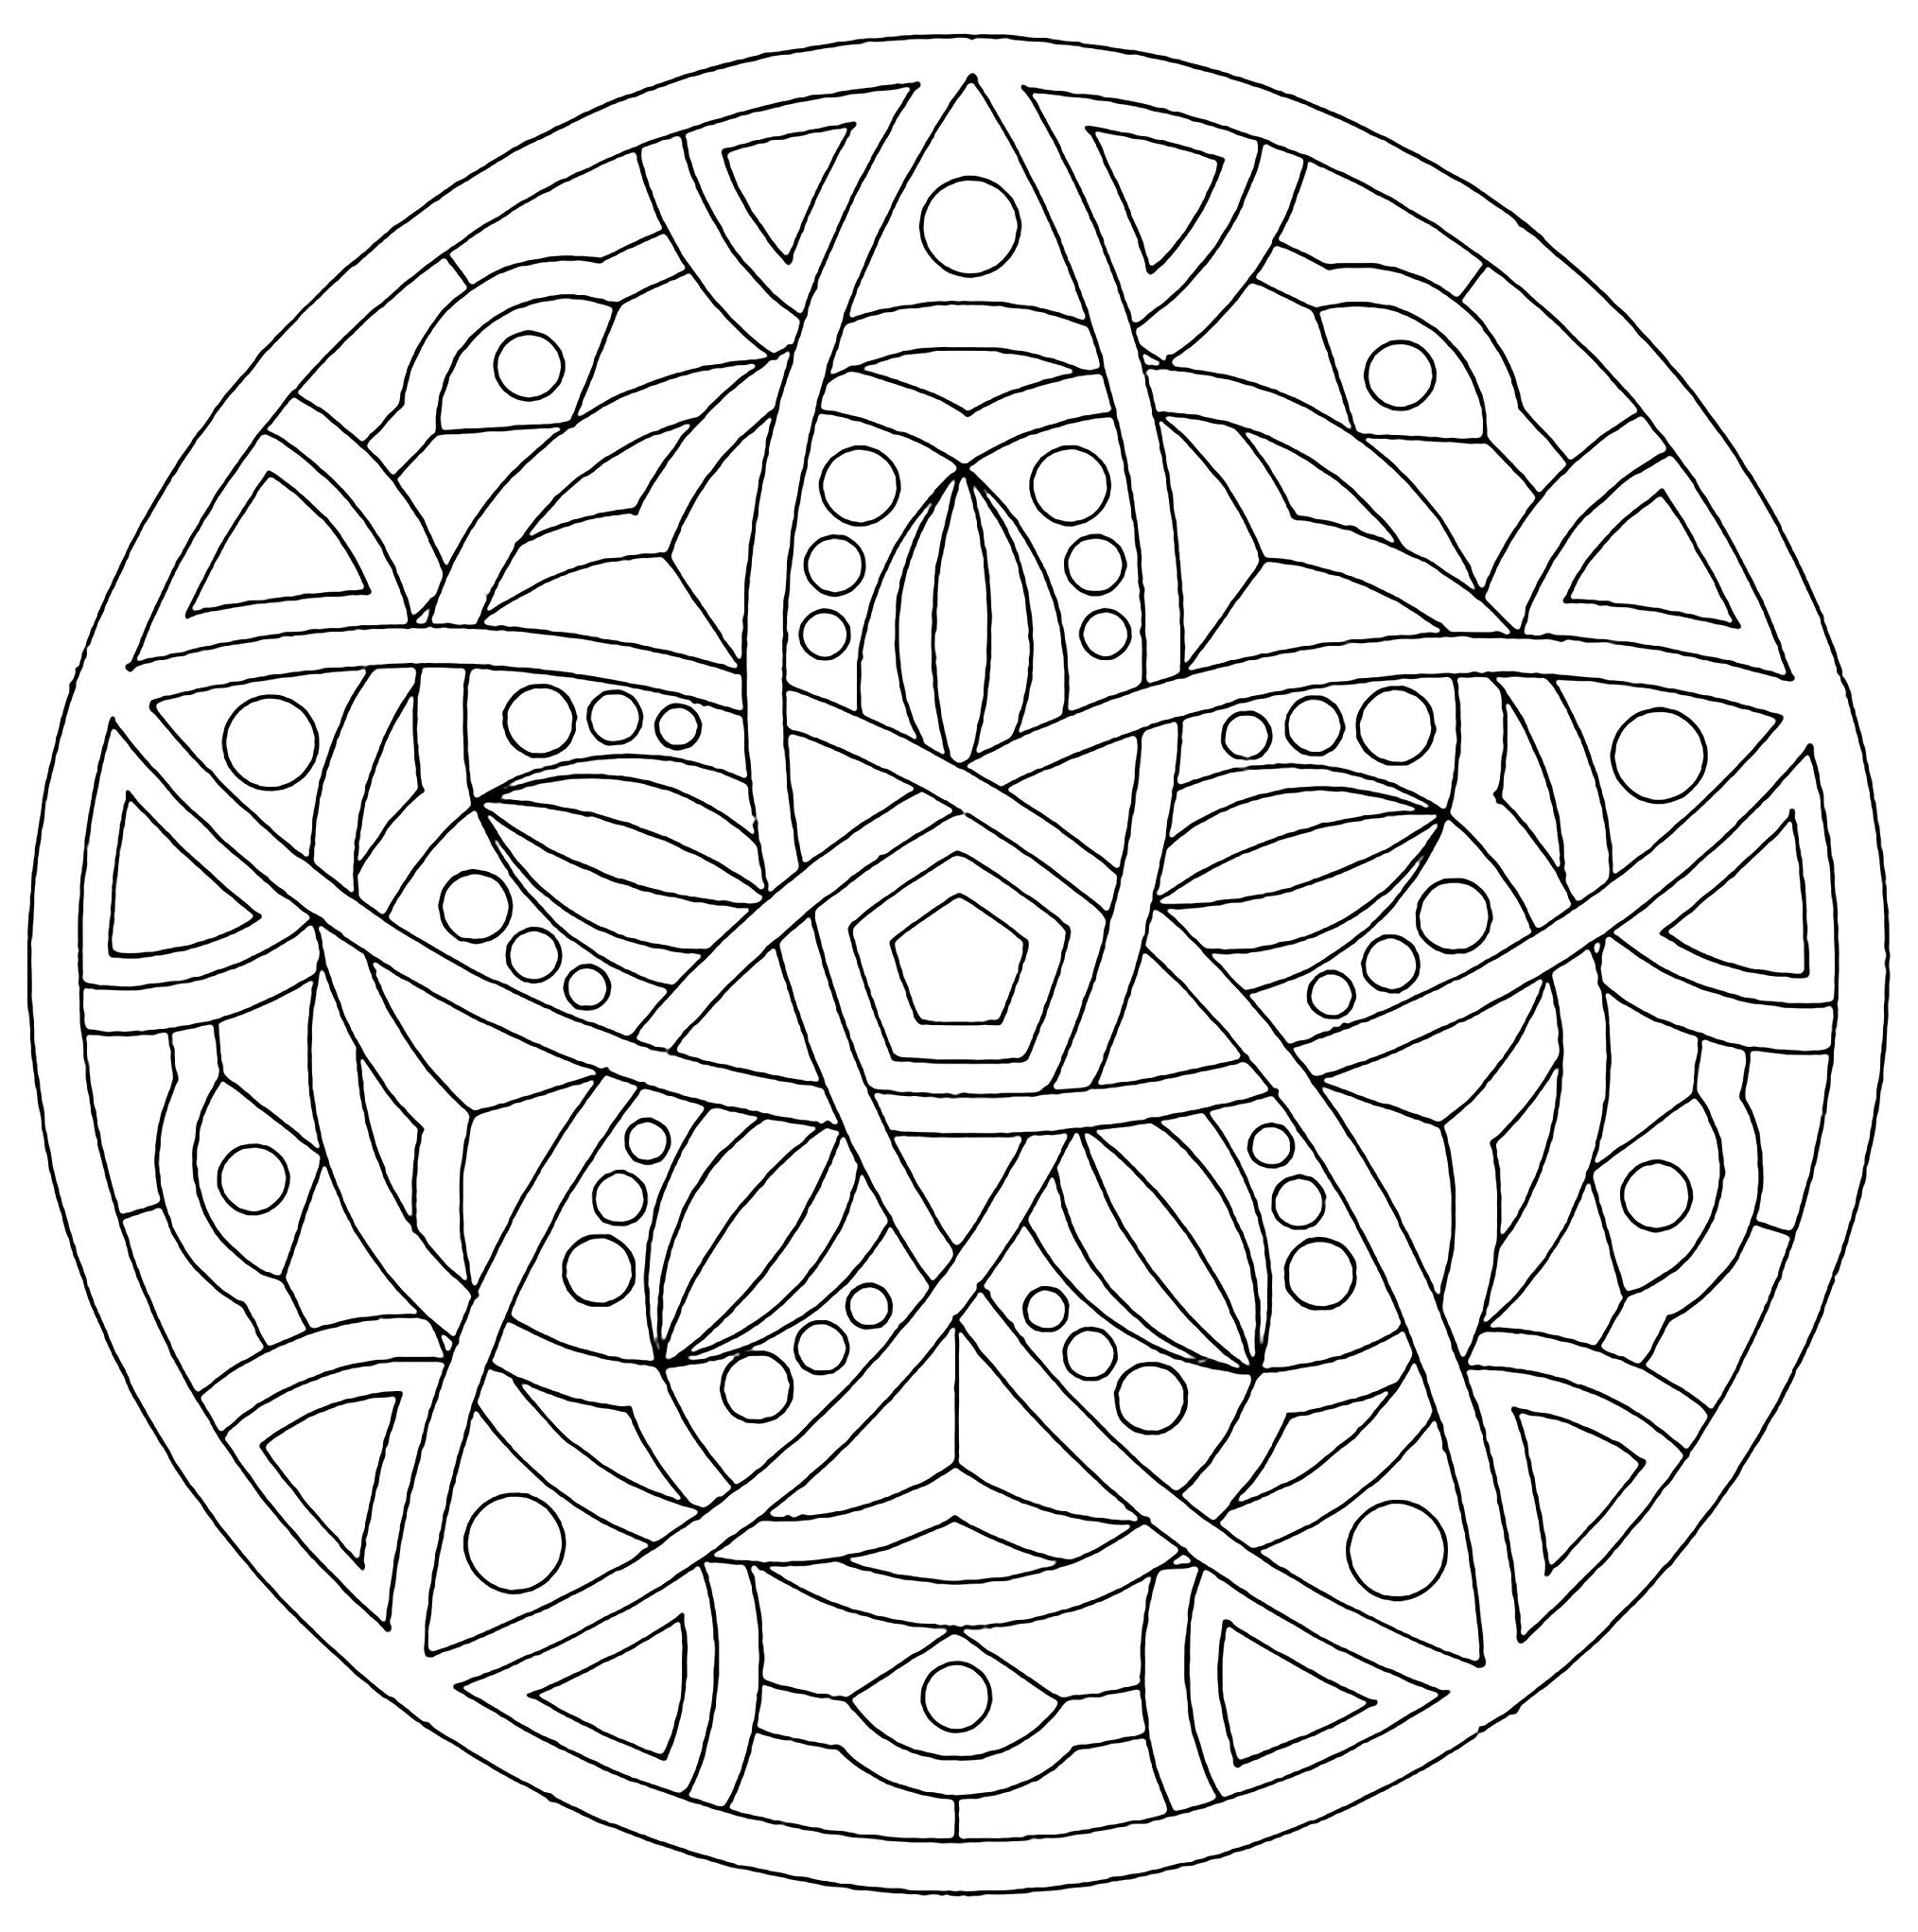 Here are Difficult Mandalas Coloring